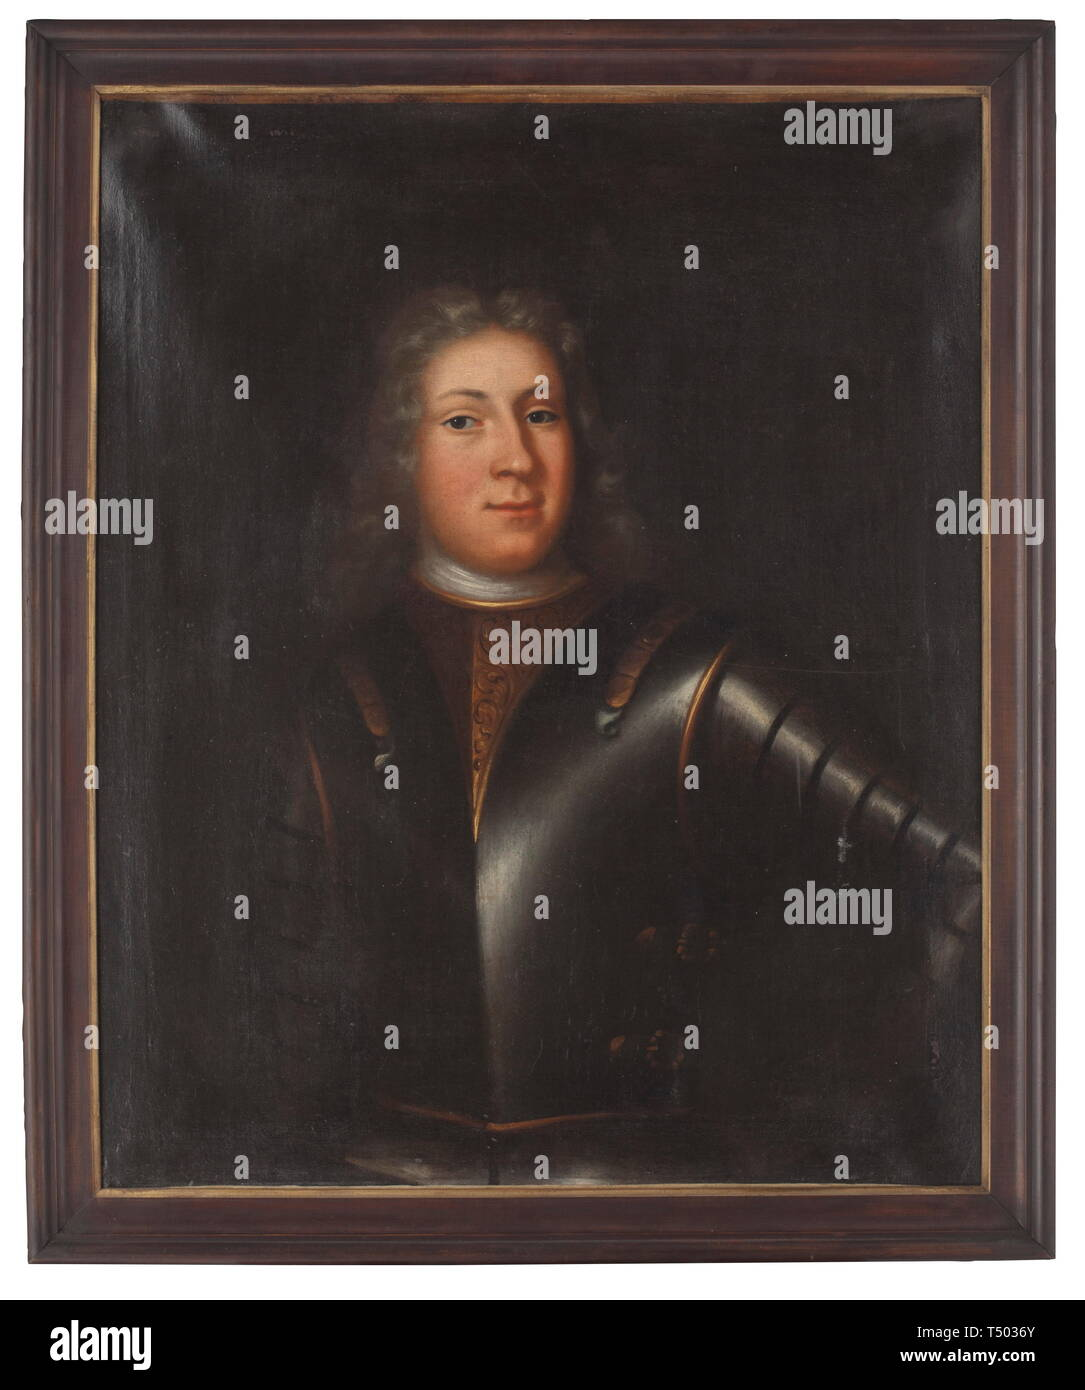 A German Baroque portrait of an aristocrat, end of the 17th century. Oil on canvas. Portrait of a male with periwig and partly gilt armour. In a contemporary profiled frame. Stretcher frame with slight worm damage. Dimensions of the picture 72 x 87.5 cm, dimensions of the frame 81 x 98 cm. historic, historical, fine arts, art, 17th century, Additional-Rights-Clearance-Info-Not-Available - Stock Image